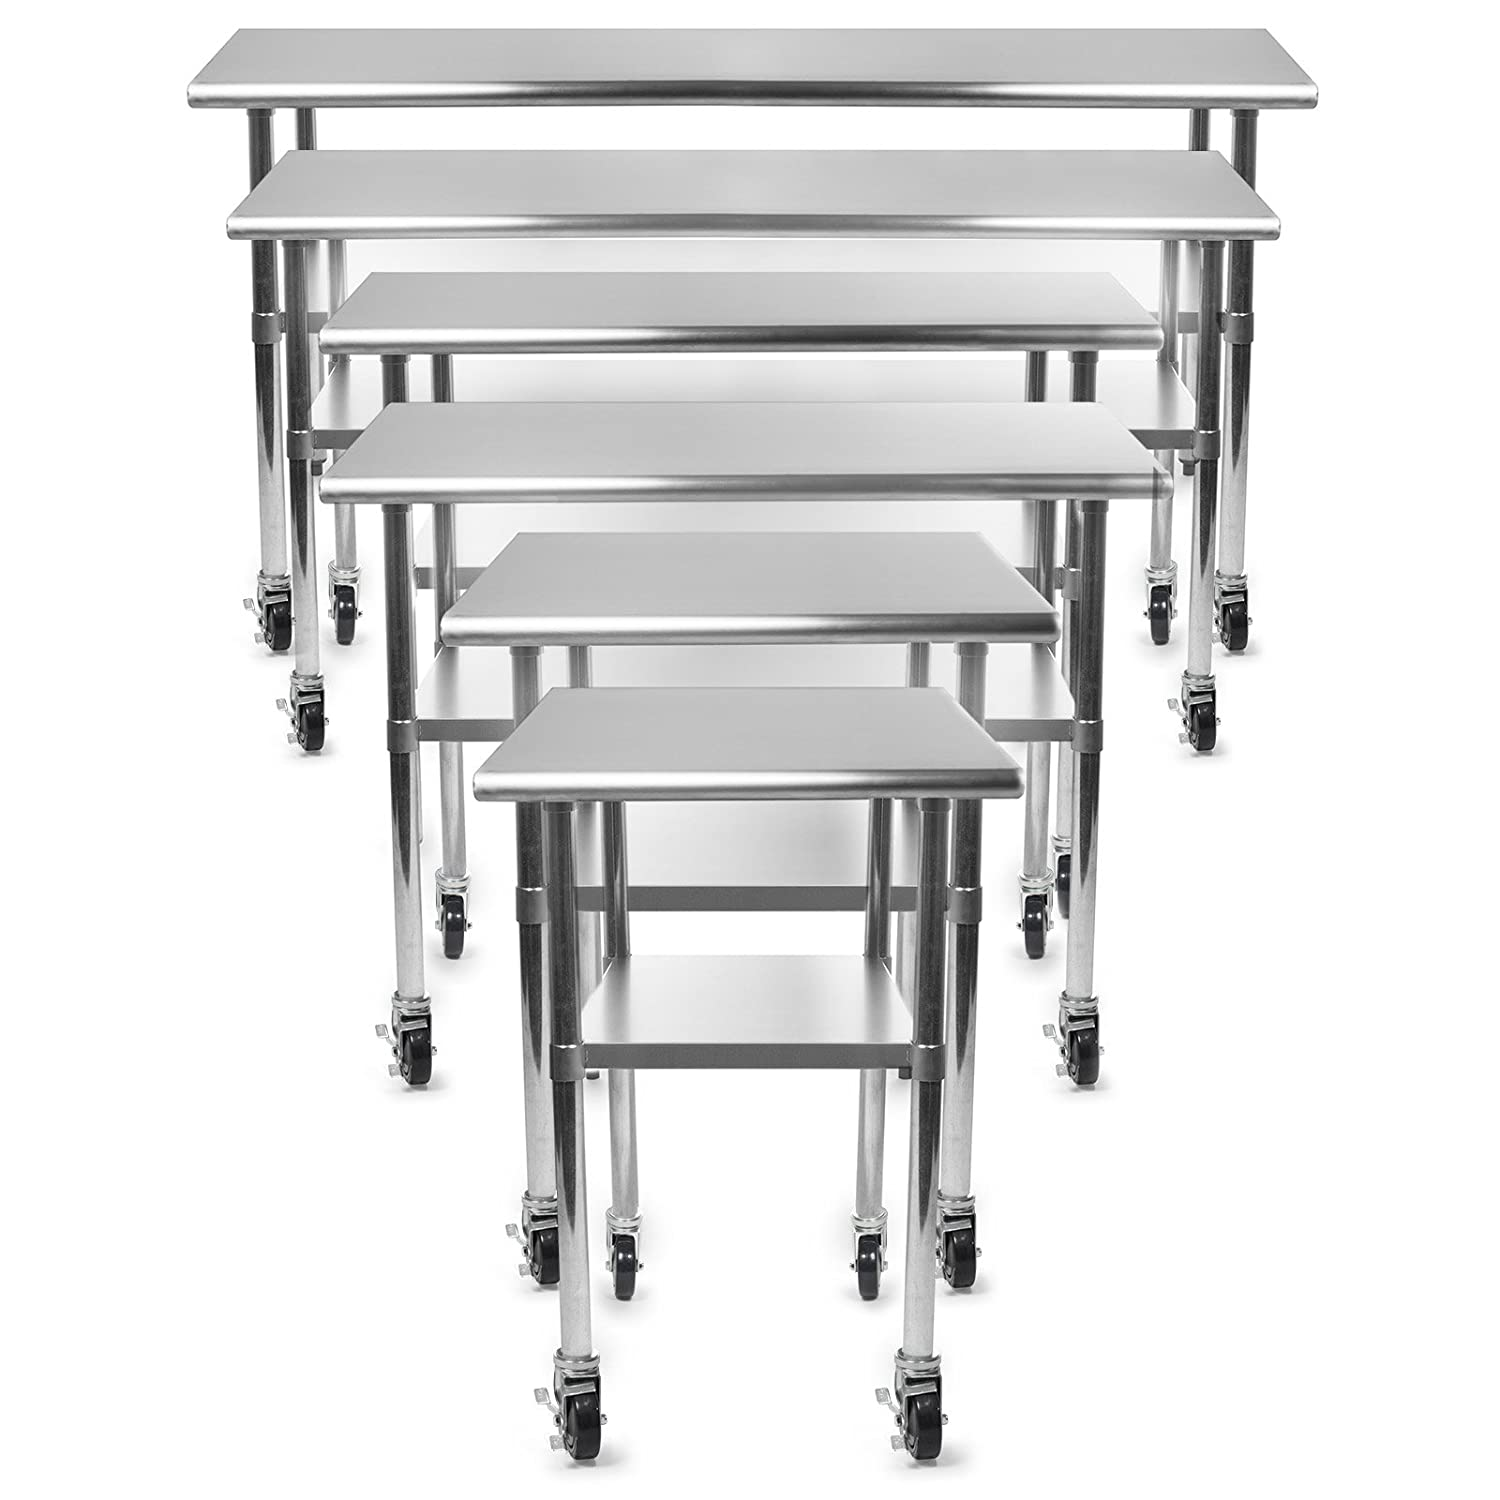 Amazon.com: Gridmann NSF Stainless Steel Commercial Kitchen Prep ...